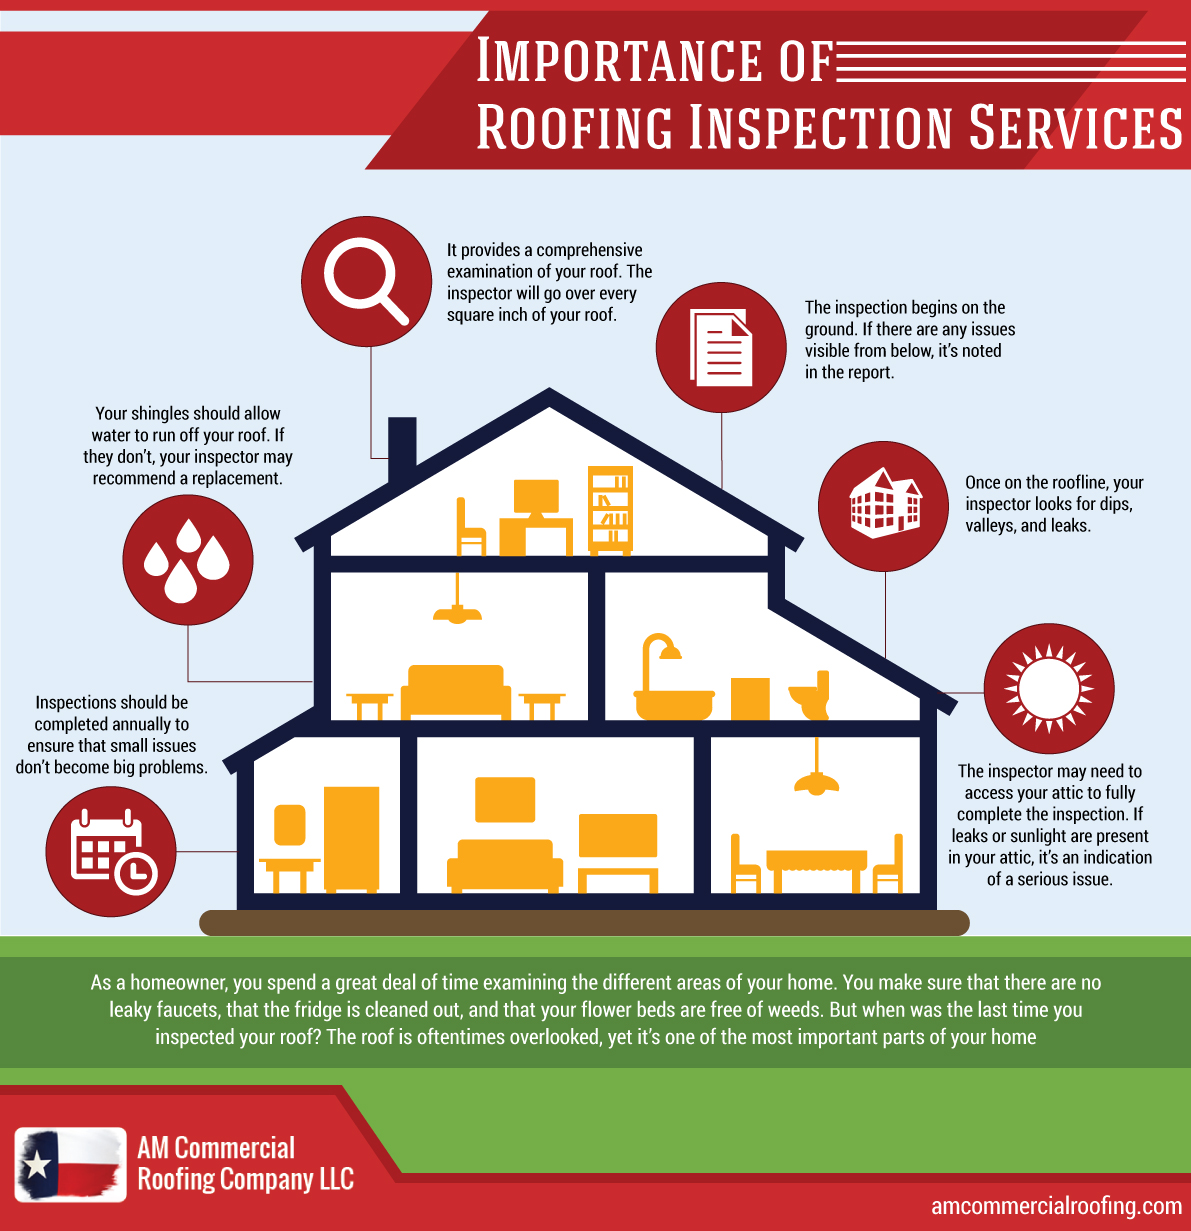 Importance of Roofing Inspection Services